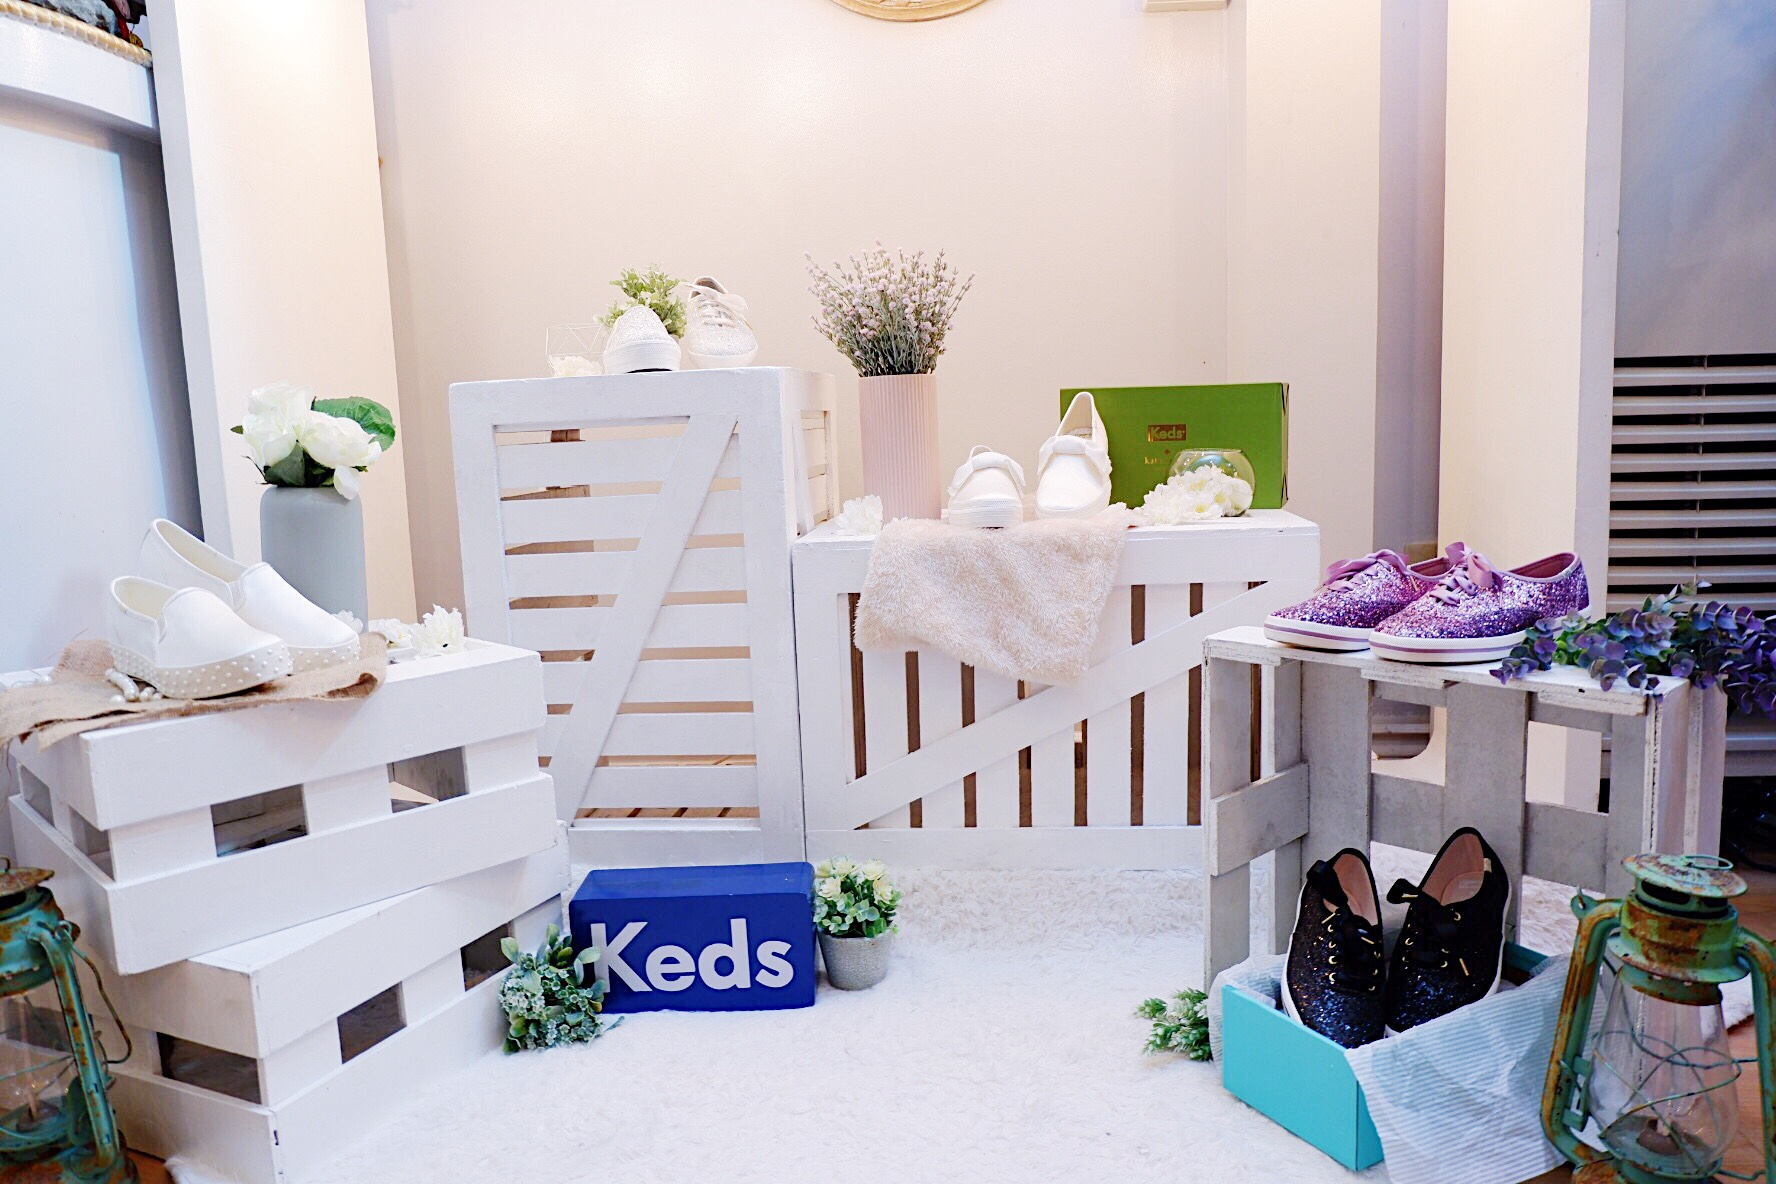 Keds and Happy Andrada Collaboration